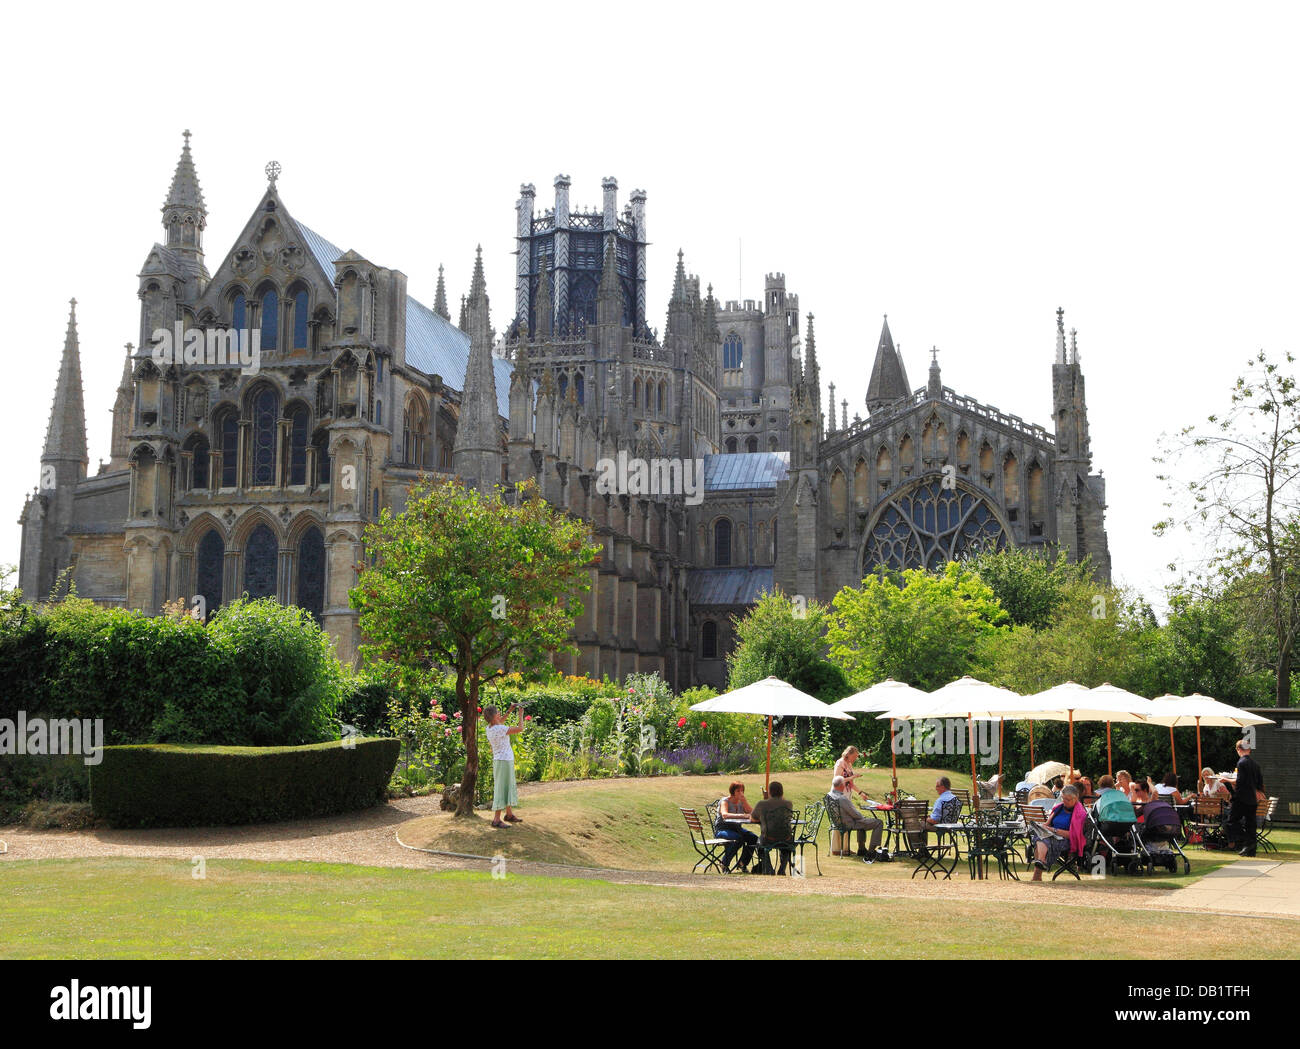 Ely, Almonry Tea Room, Restaurant, Cathedral, Cambridgeshire, England UK English tea rooms cathedrals city cities - Stock Image